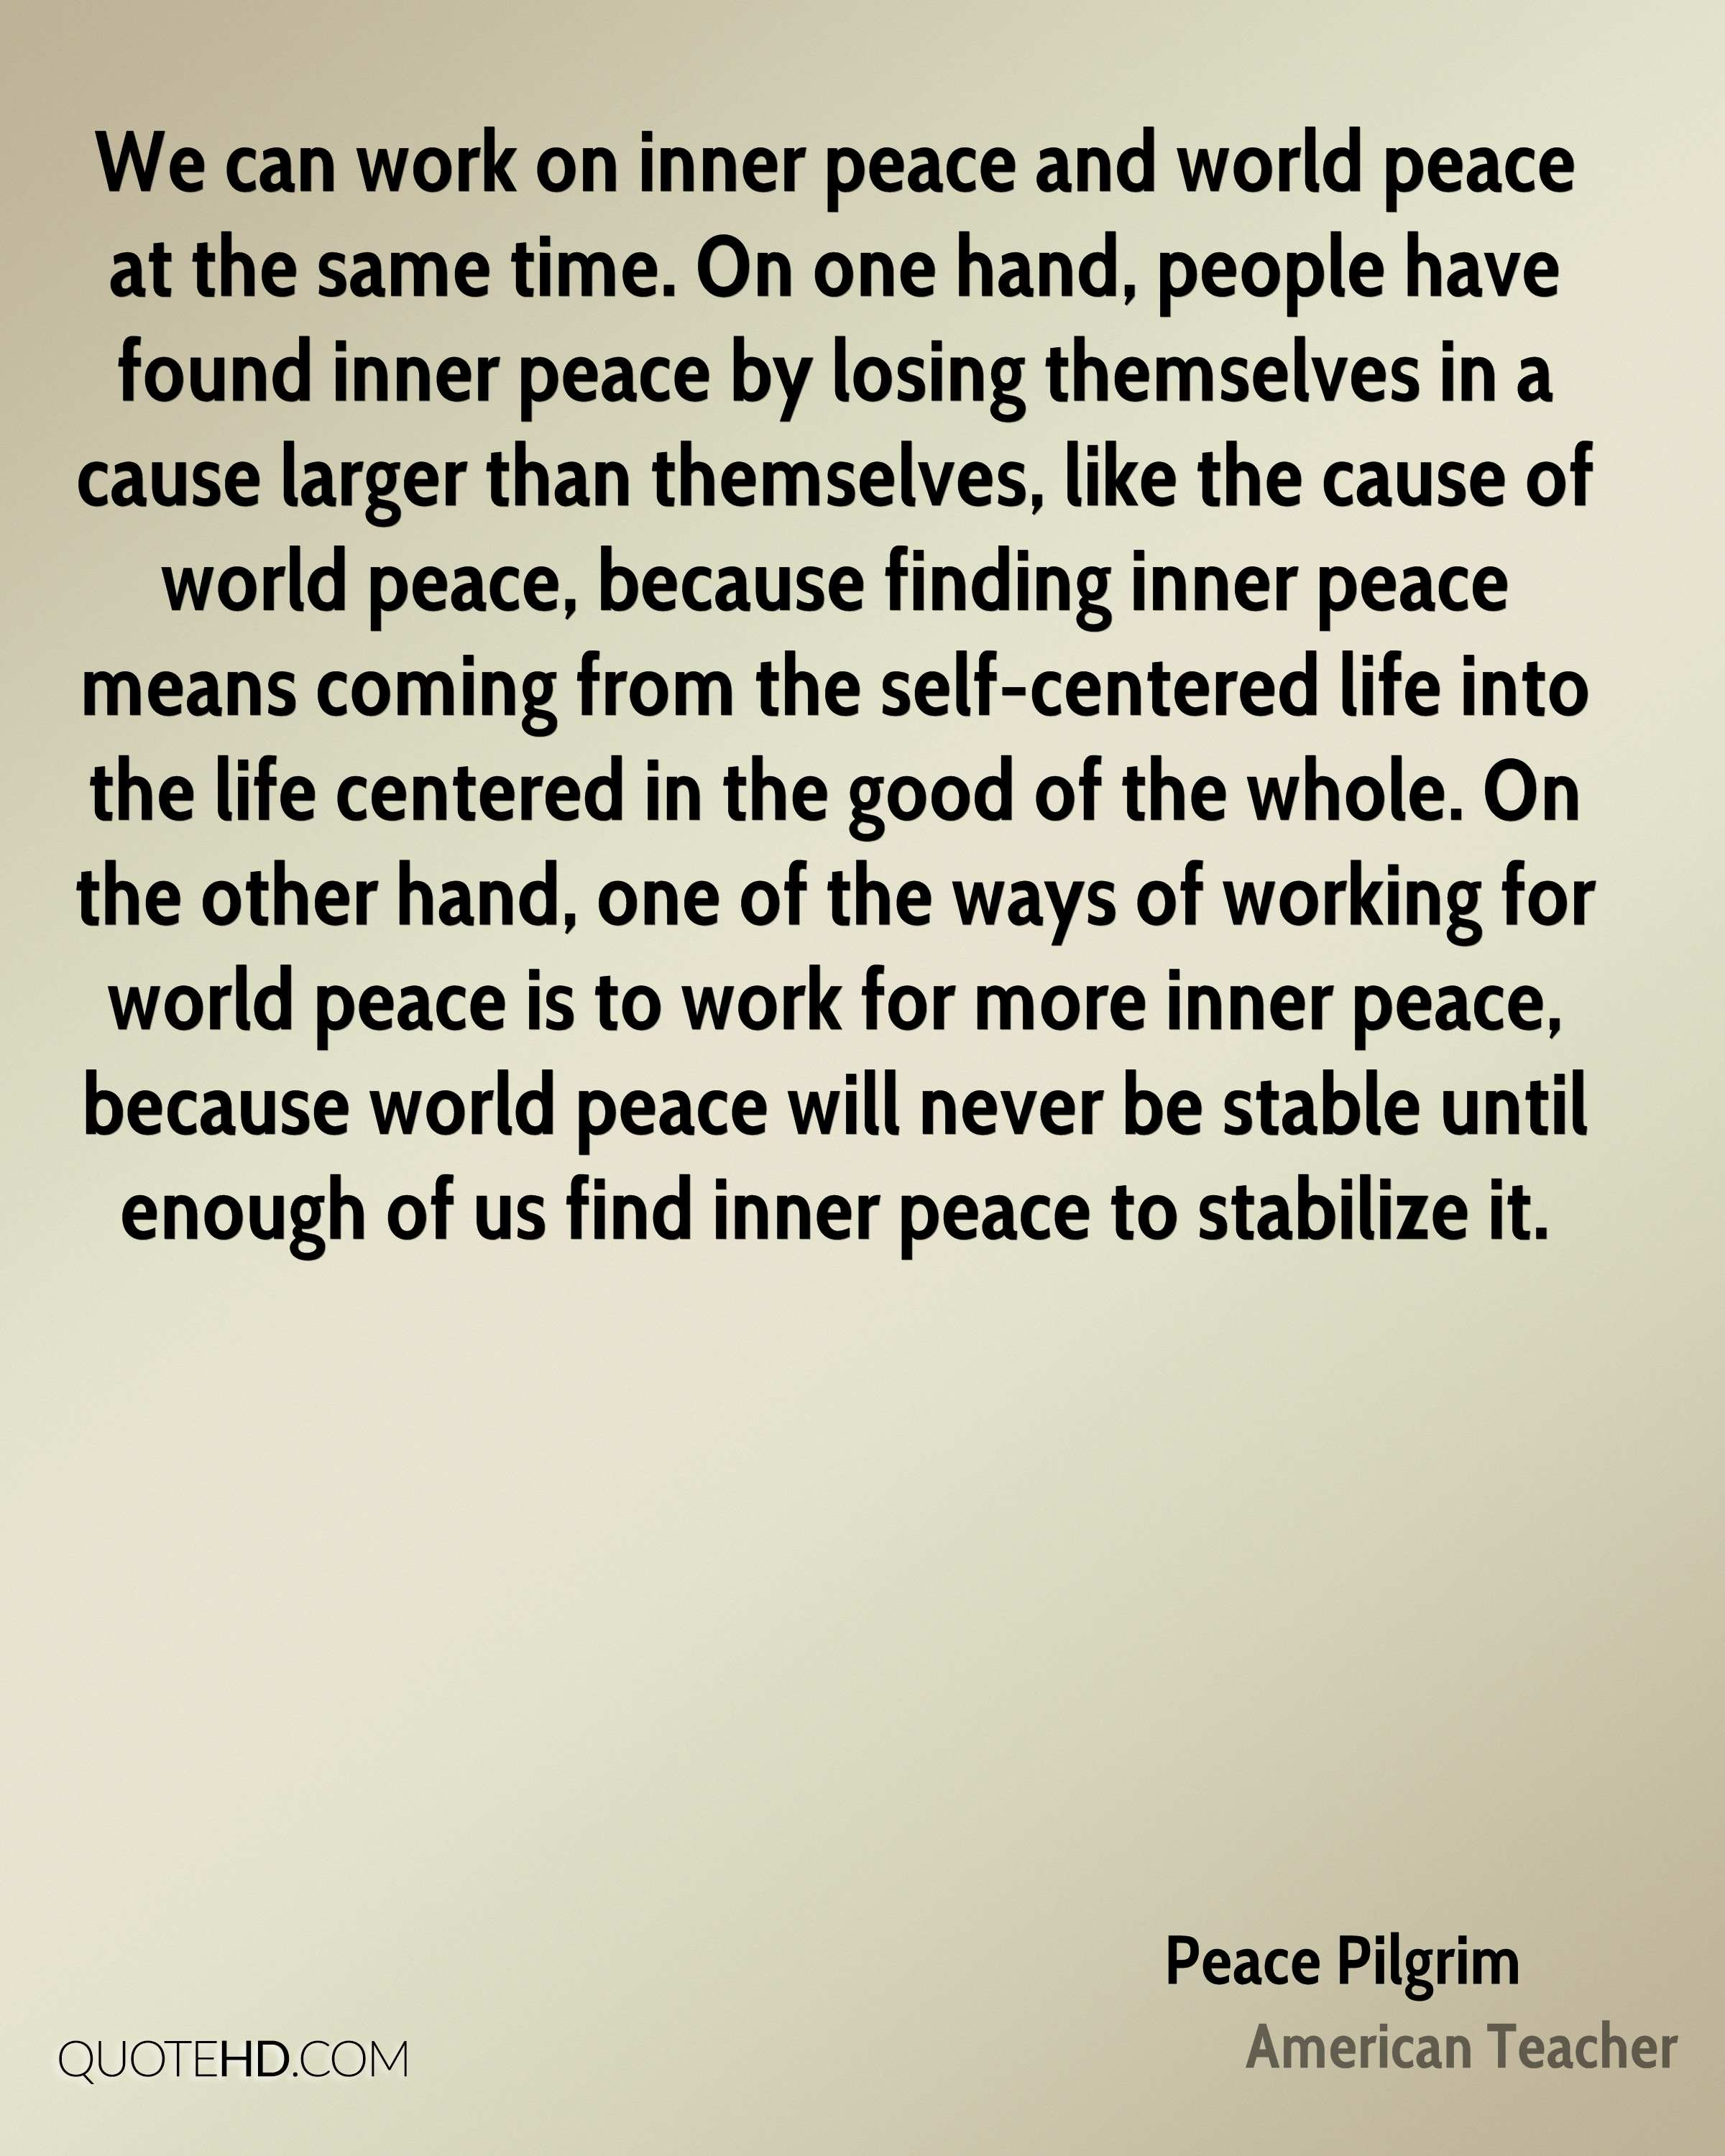 We can work on inner peace and world peace at the same time. On one hand, people have found inner peace by losing themselves in a cause larger than themselves, like the cause of world peace, because finding inner peace means coming from the self-centered life into the life centered in the good of the whole. On the other hand, one of the ways of working for world peace is to work for more inner peace, because world peace will never be stable until enough of us find inner peace to stabilize it.